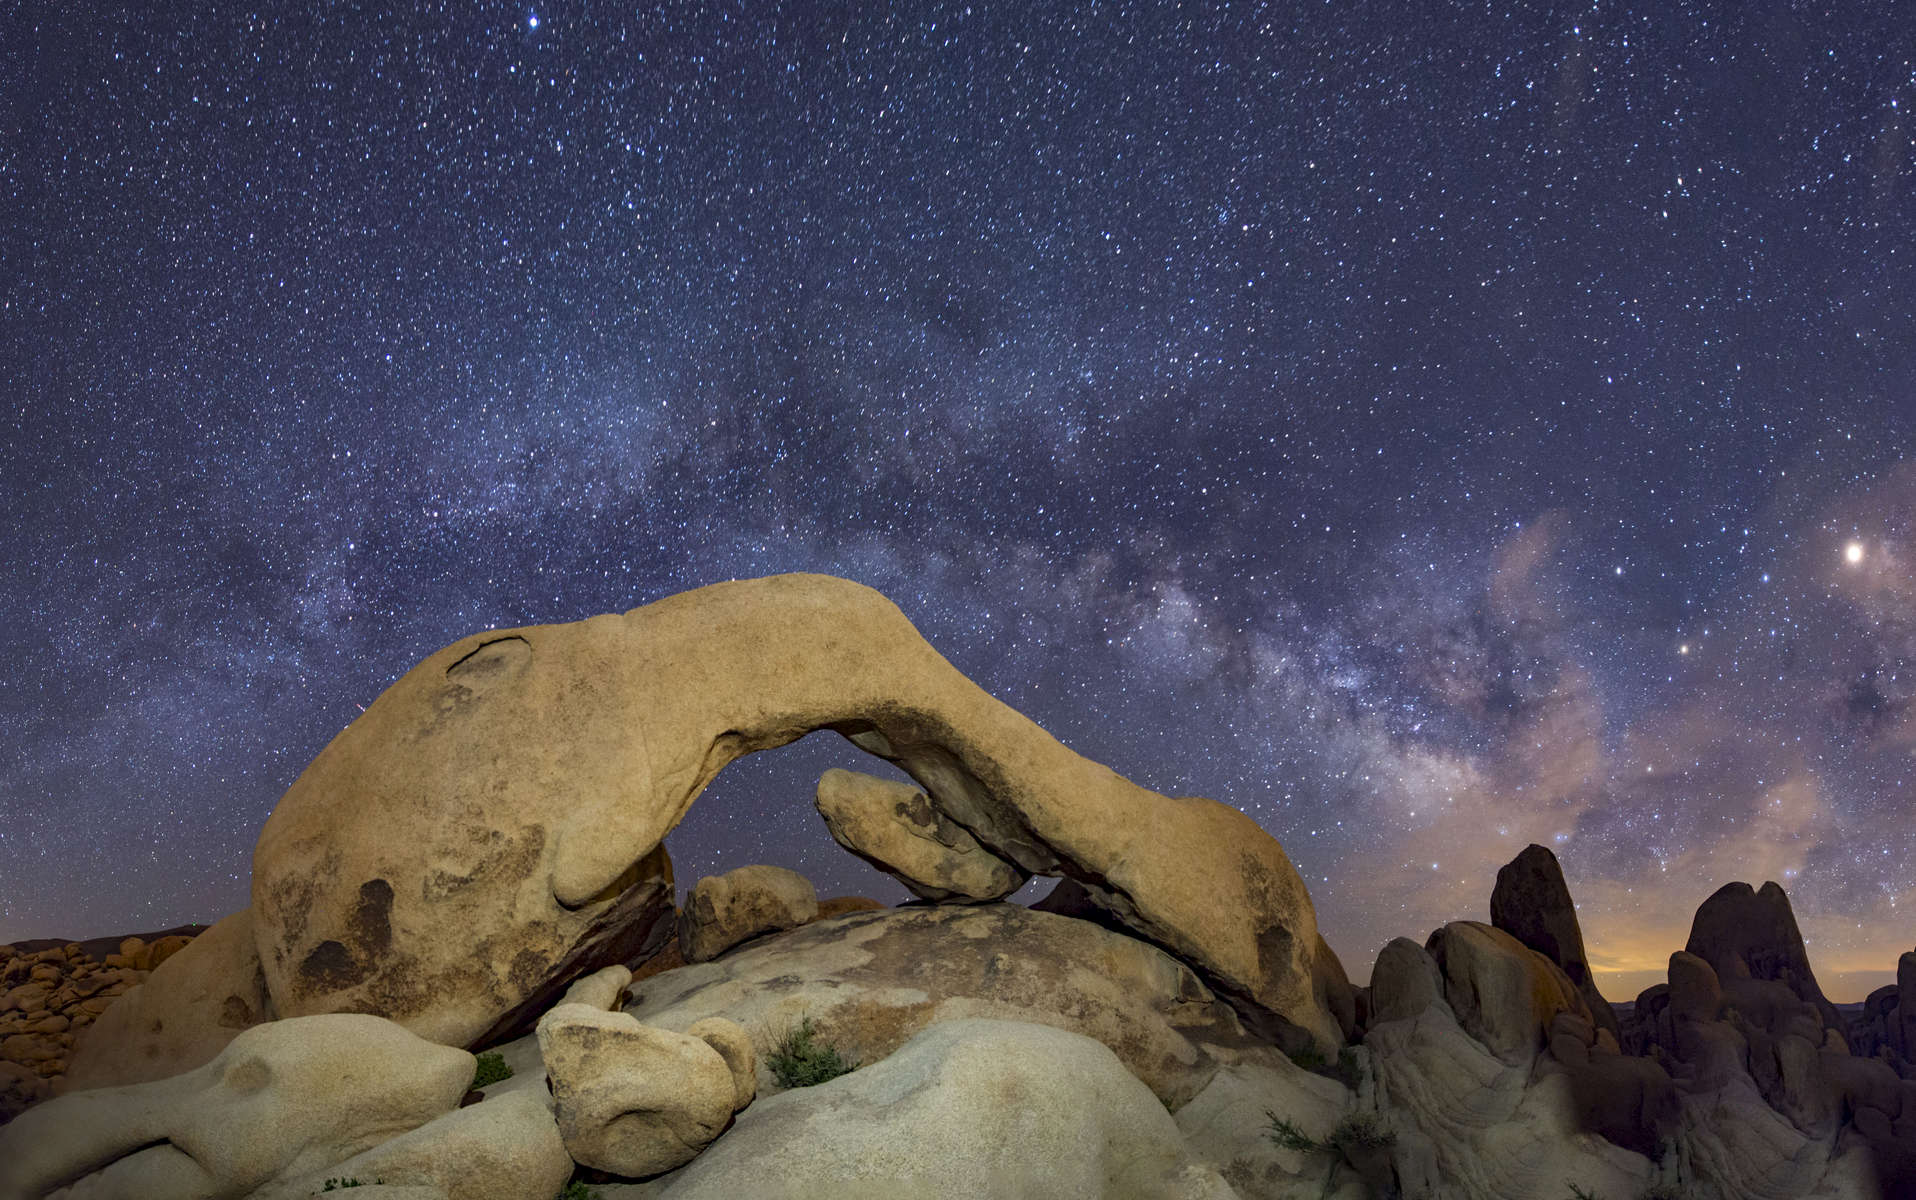 June 9, 2016; The Milky Way Galaxy Above Arch Rock in Joshua Tree National Park, California.  (Photo by Barbara Johnston)